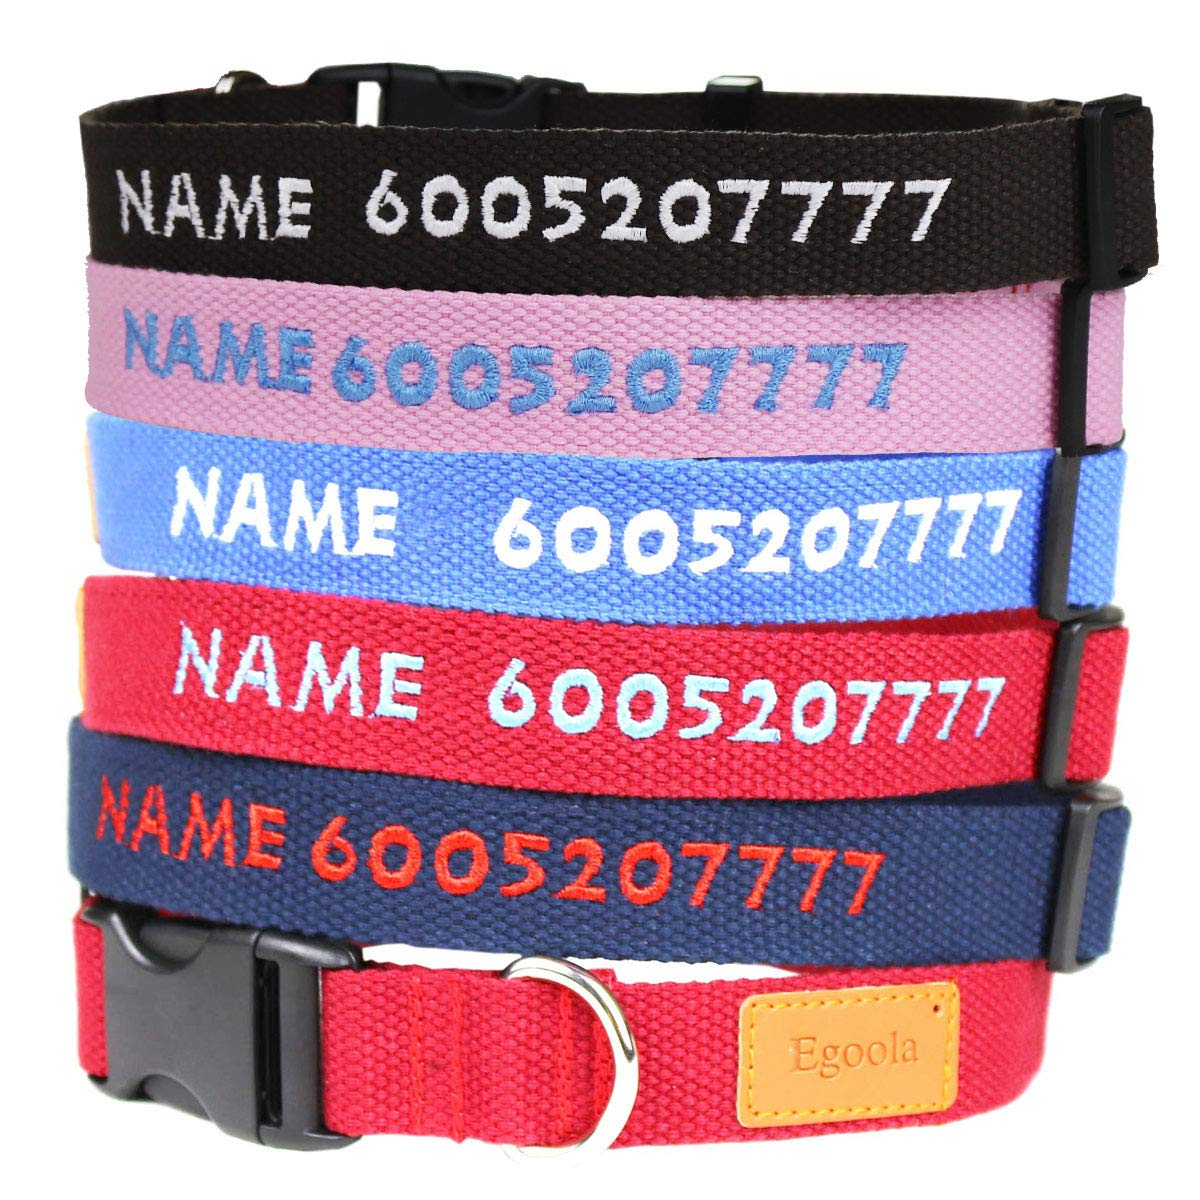 Quality made personalized collar